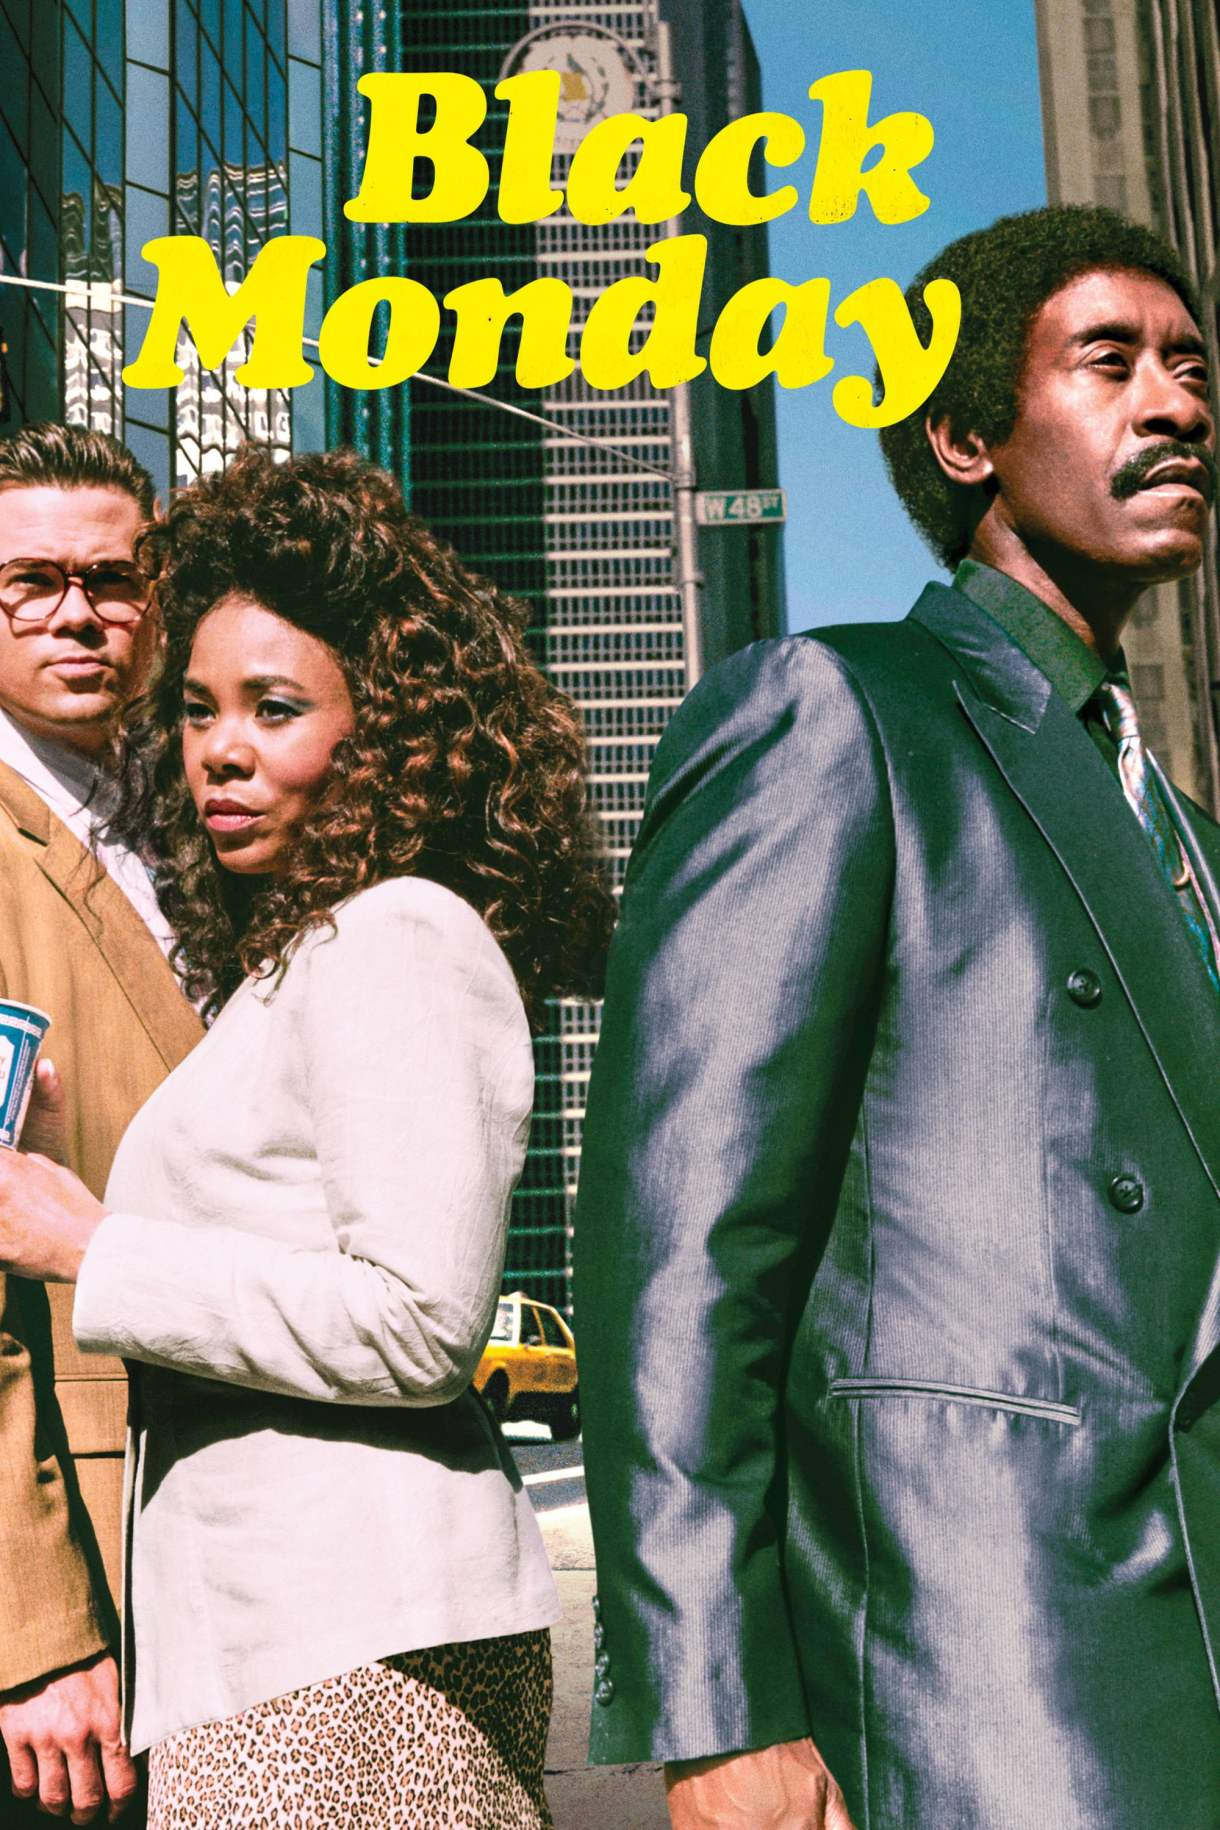 A photo showing the title of the show Black Monday in yellow bubbled font. 3 of the shows main characters are standing on Wall Street in NYC facing different directions.